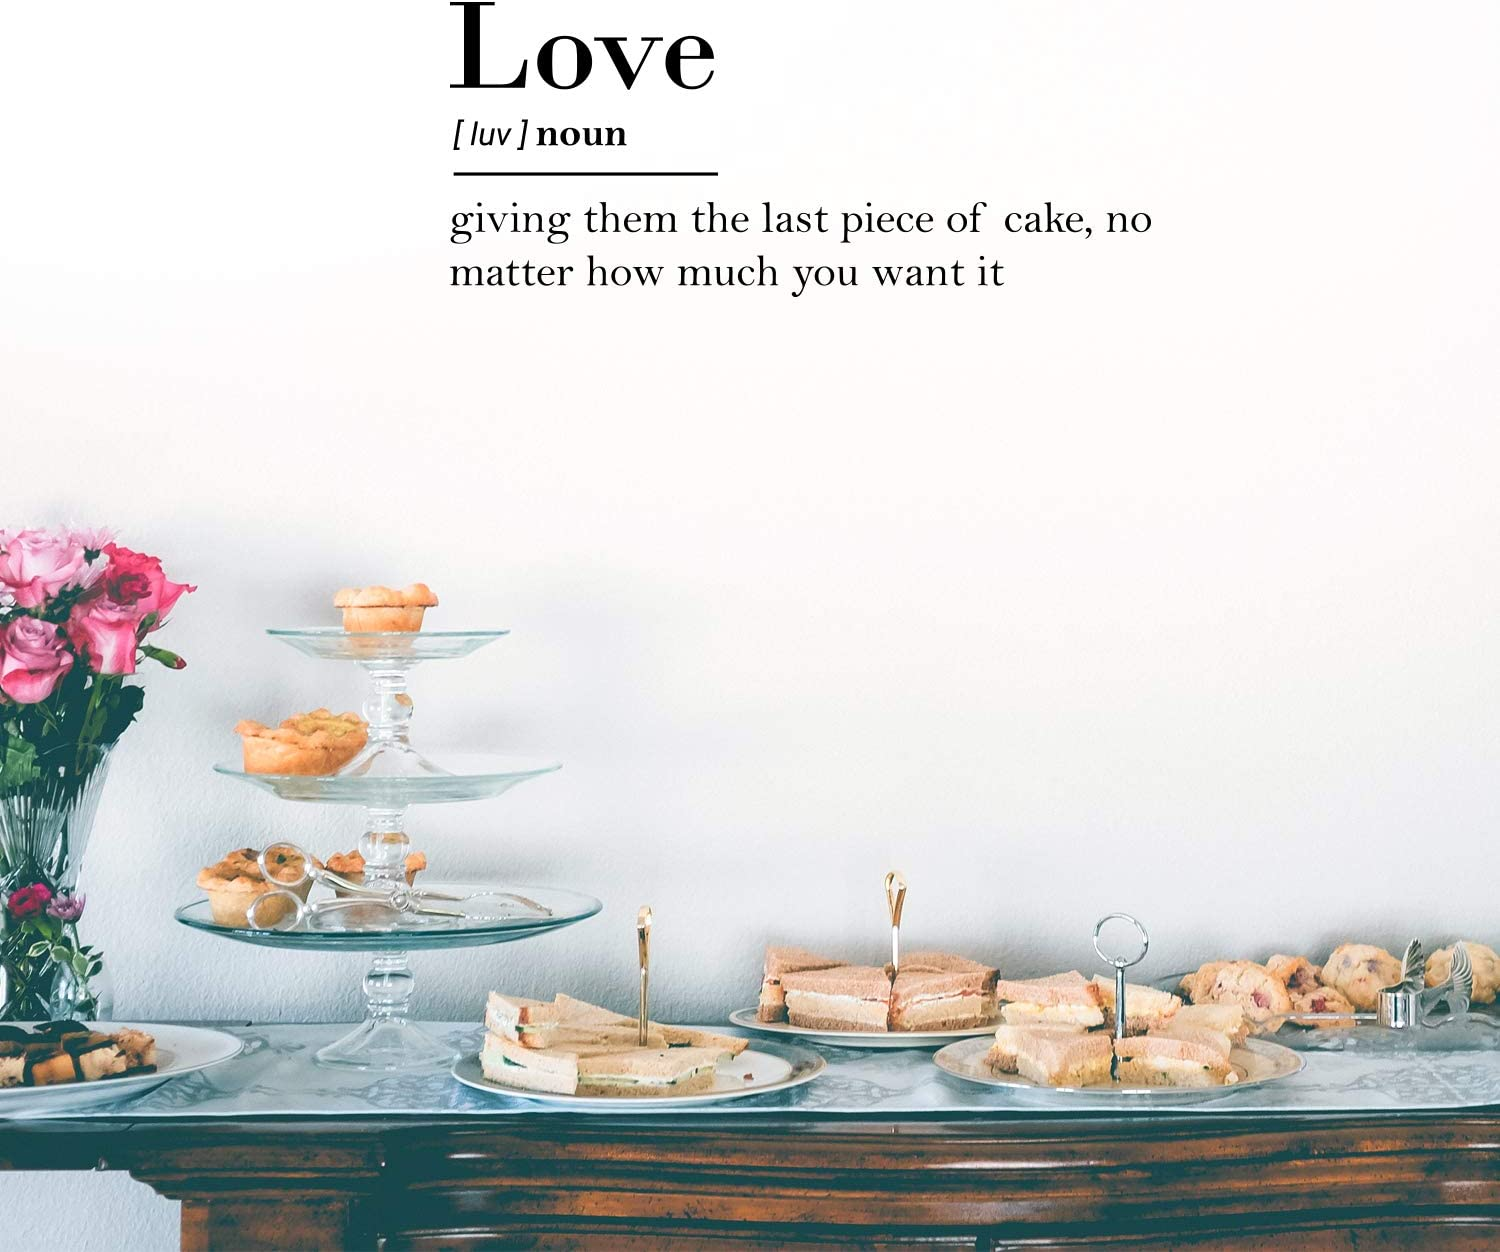 """Vinyl Wall Art Decal - Love Definition Giving Them The Last Piece of Cake No Matter How Much You Want It - 10.5"""" x 25"""" - Funny Couples Family Quotes for Bedroom Living Room Apartment Home Kitchen"""